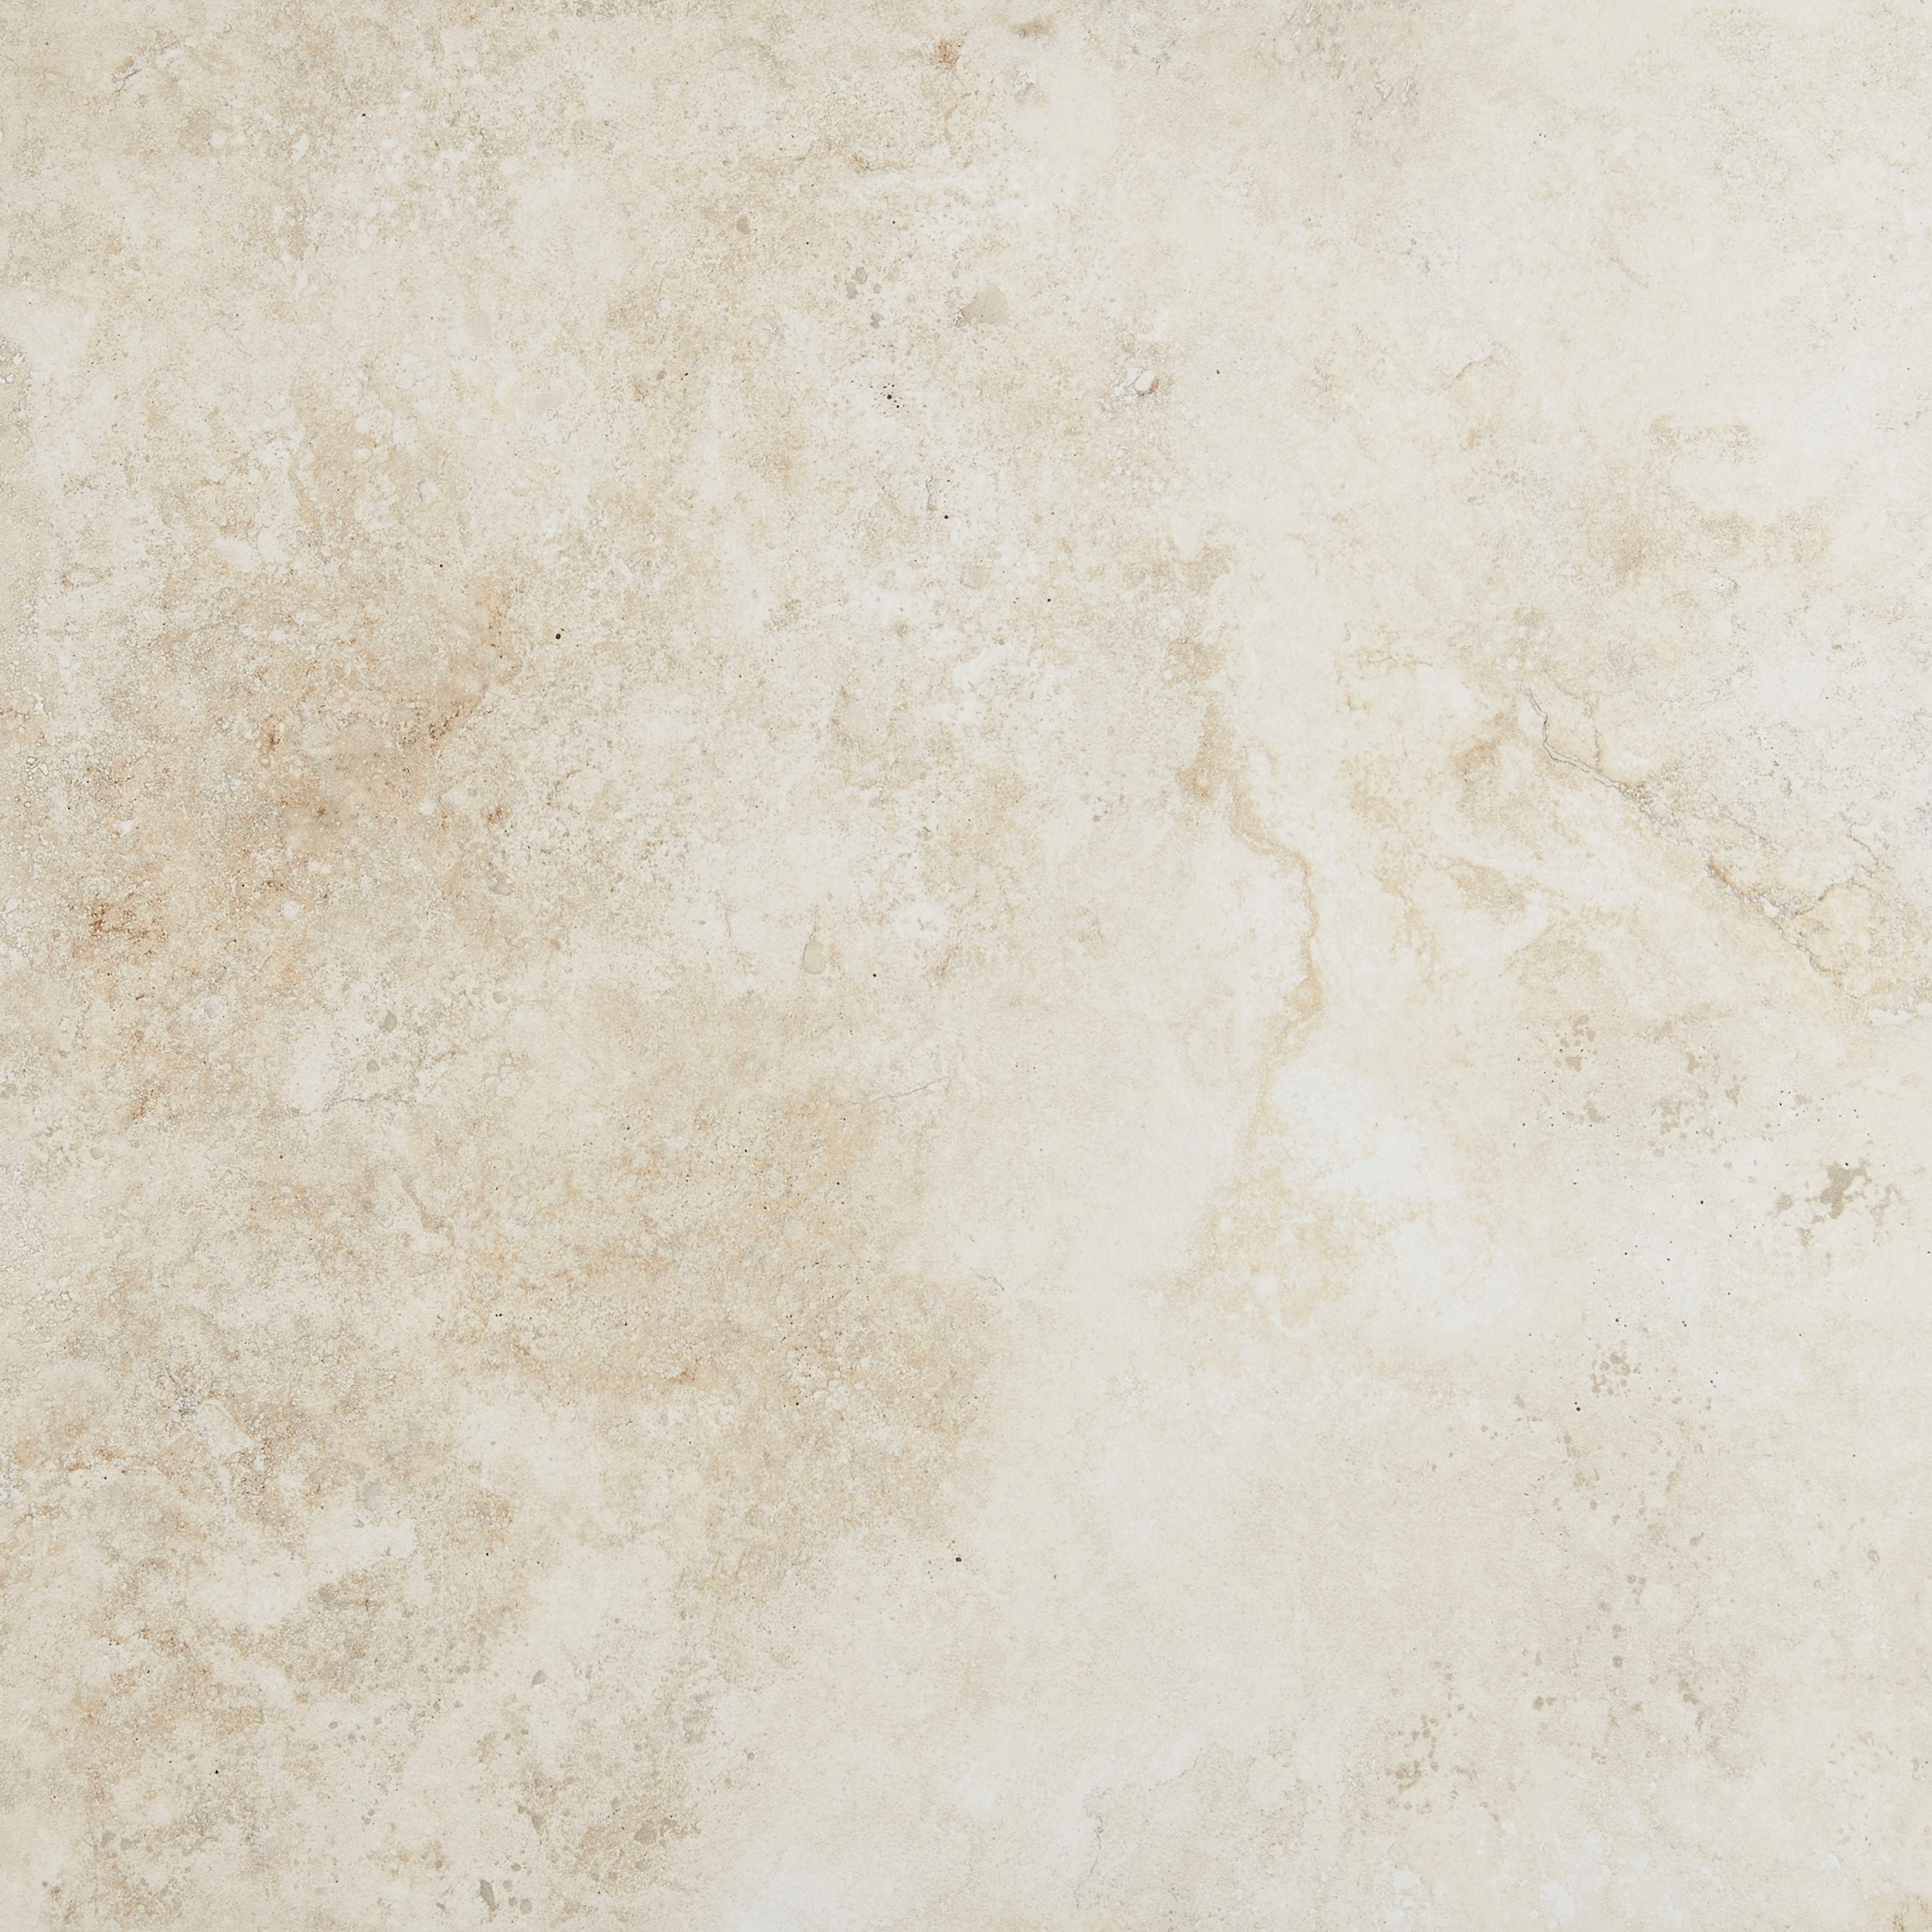 Stone Visual 18x18 Inch Glazed Porcelain Floor Tile In Terrace Beige Free Shipping On Orders Over 45 20771494